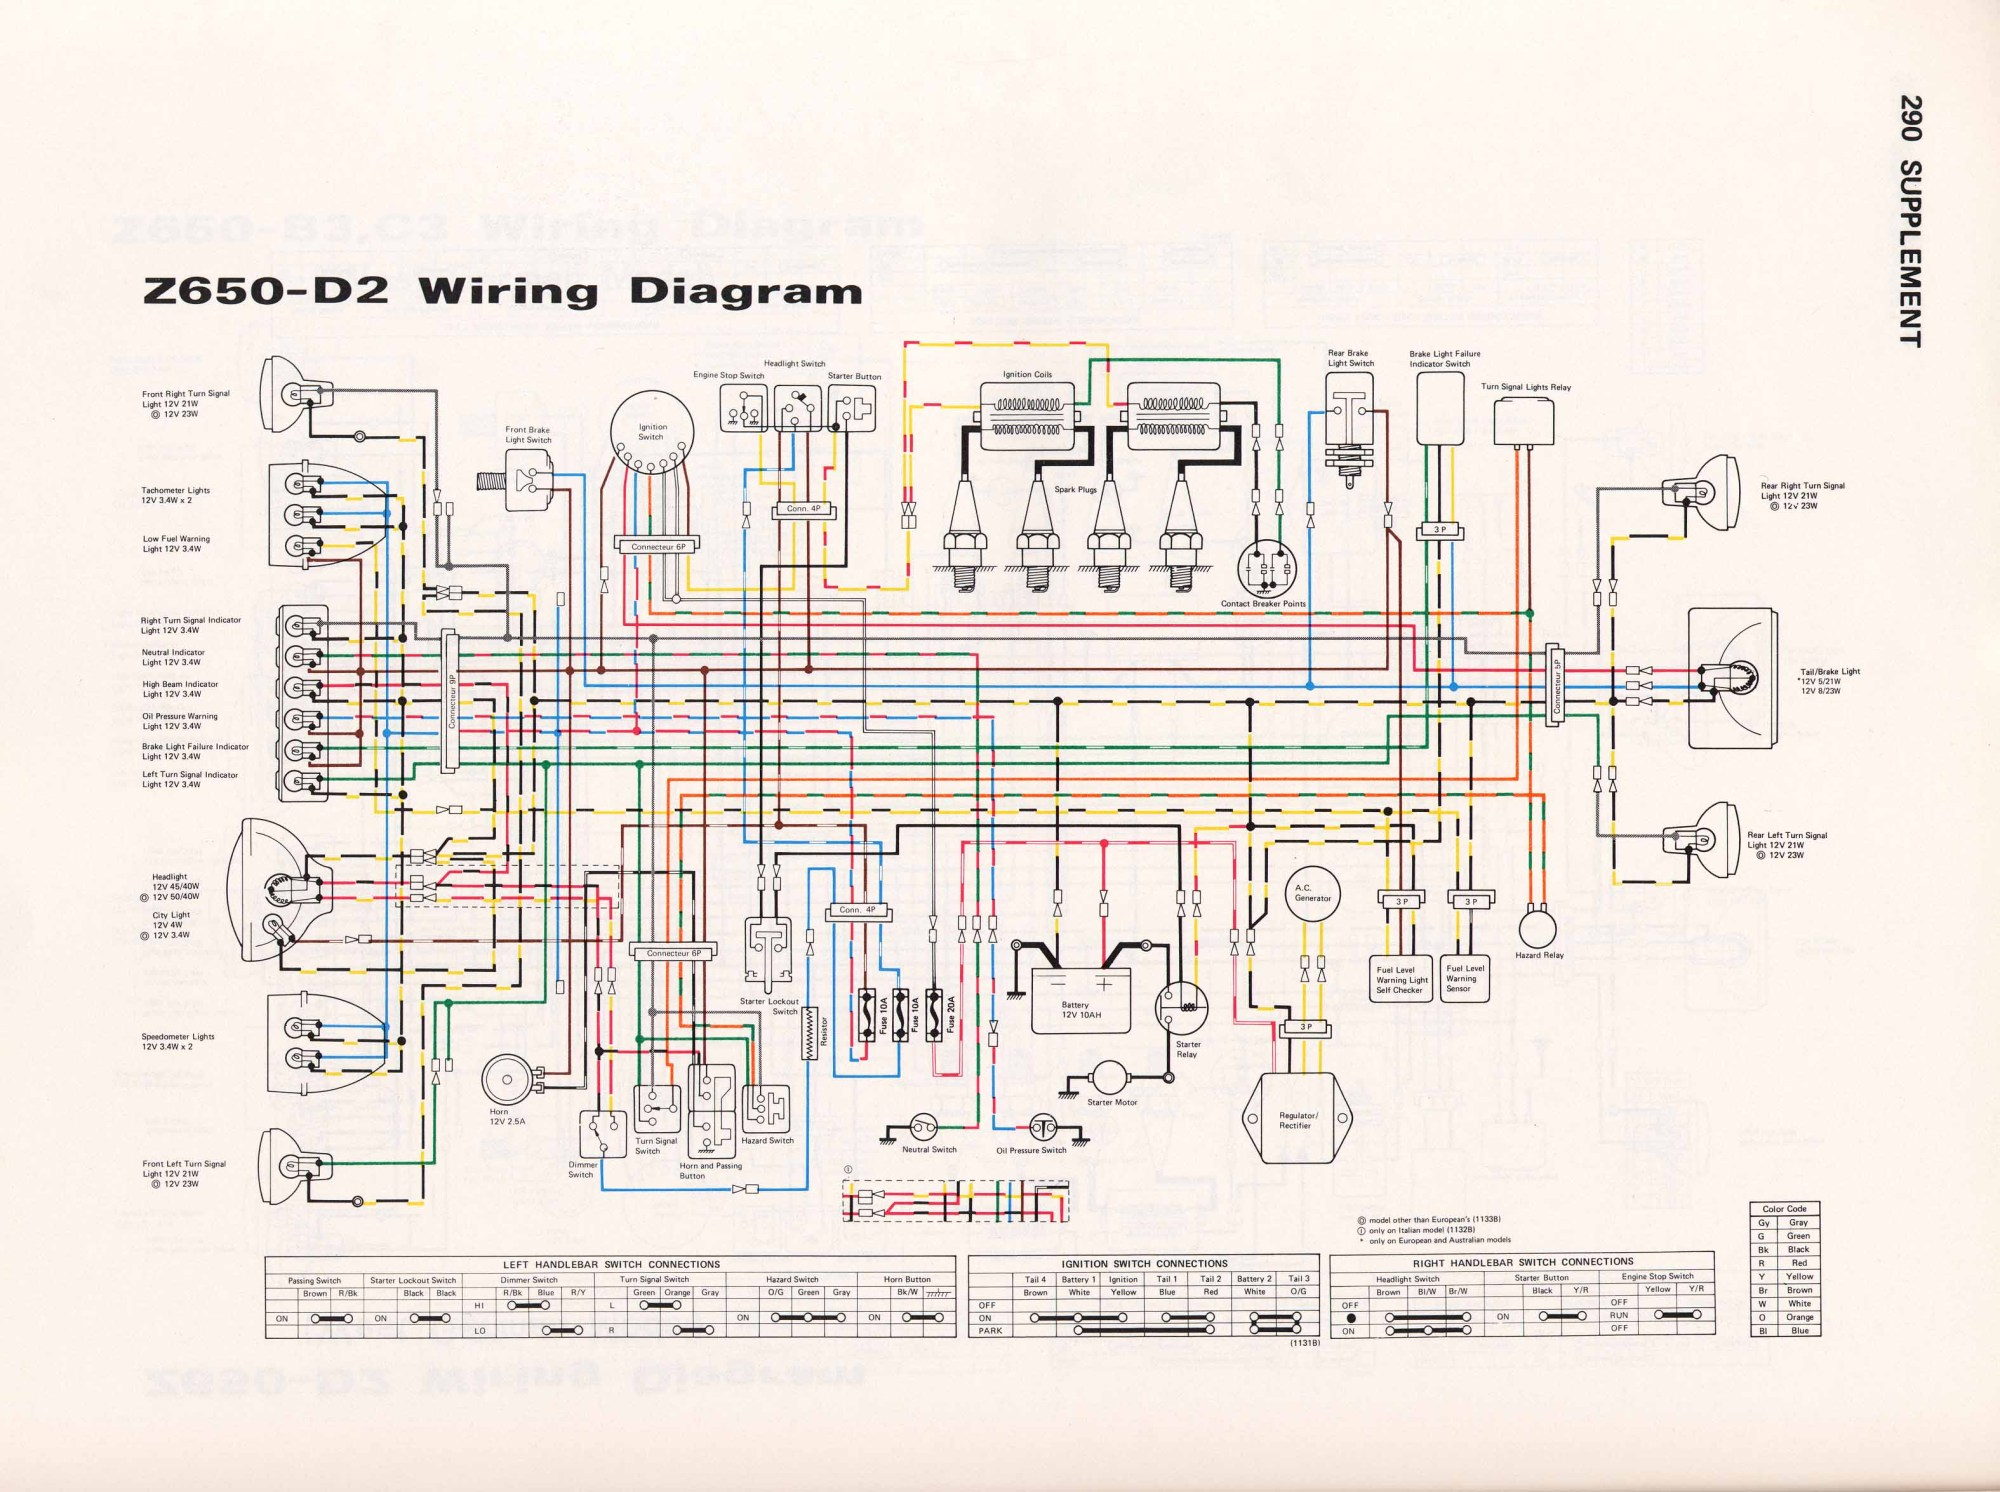 hight resolution of 1977 kawasaki kz650 wiring diagram wiring diagram fascinating 1978 kawasaki kz650 wiring diagram